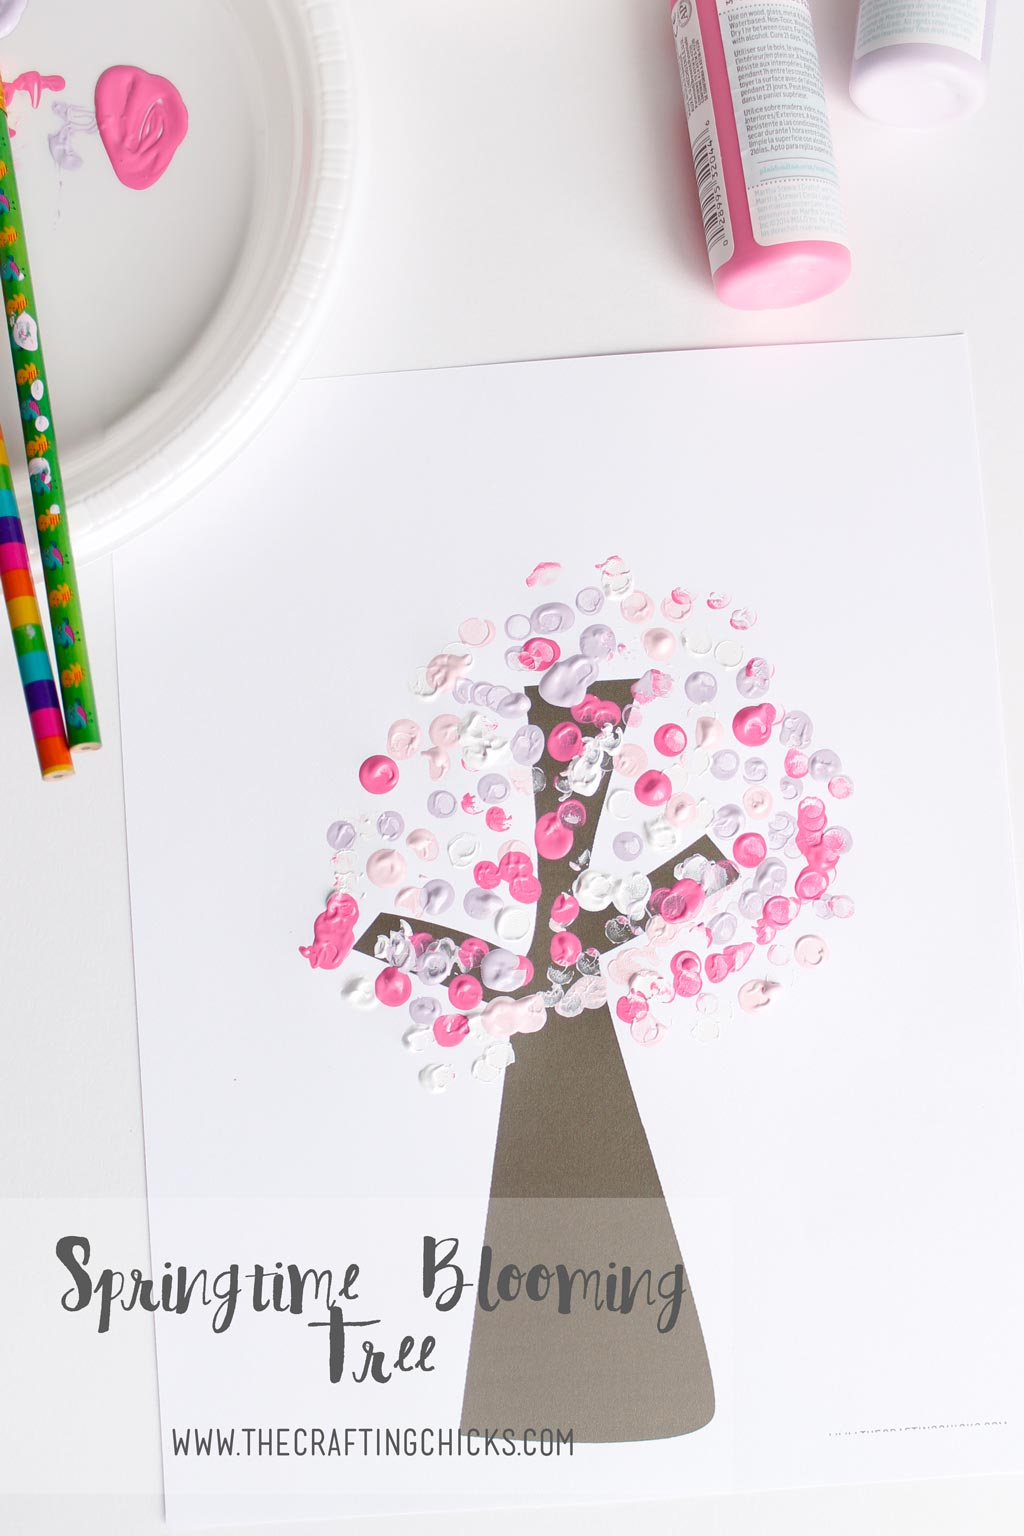 Springtime Blooming Tree Kids Craft